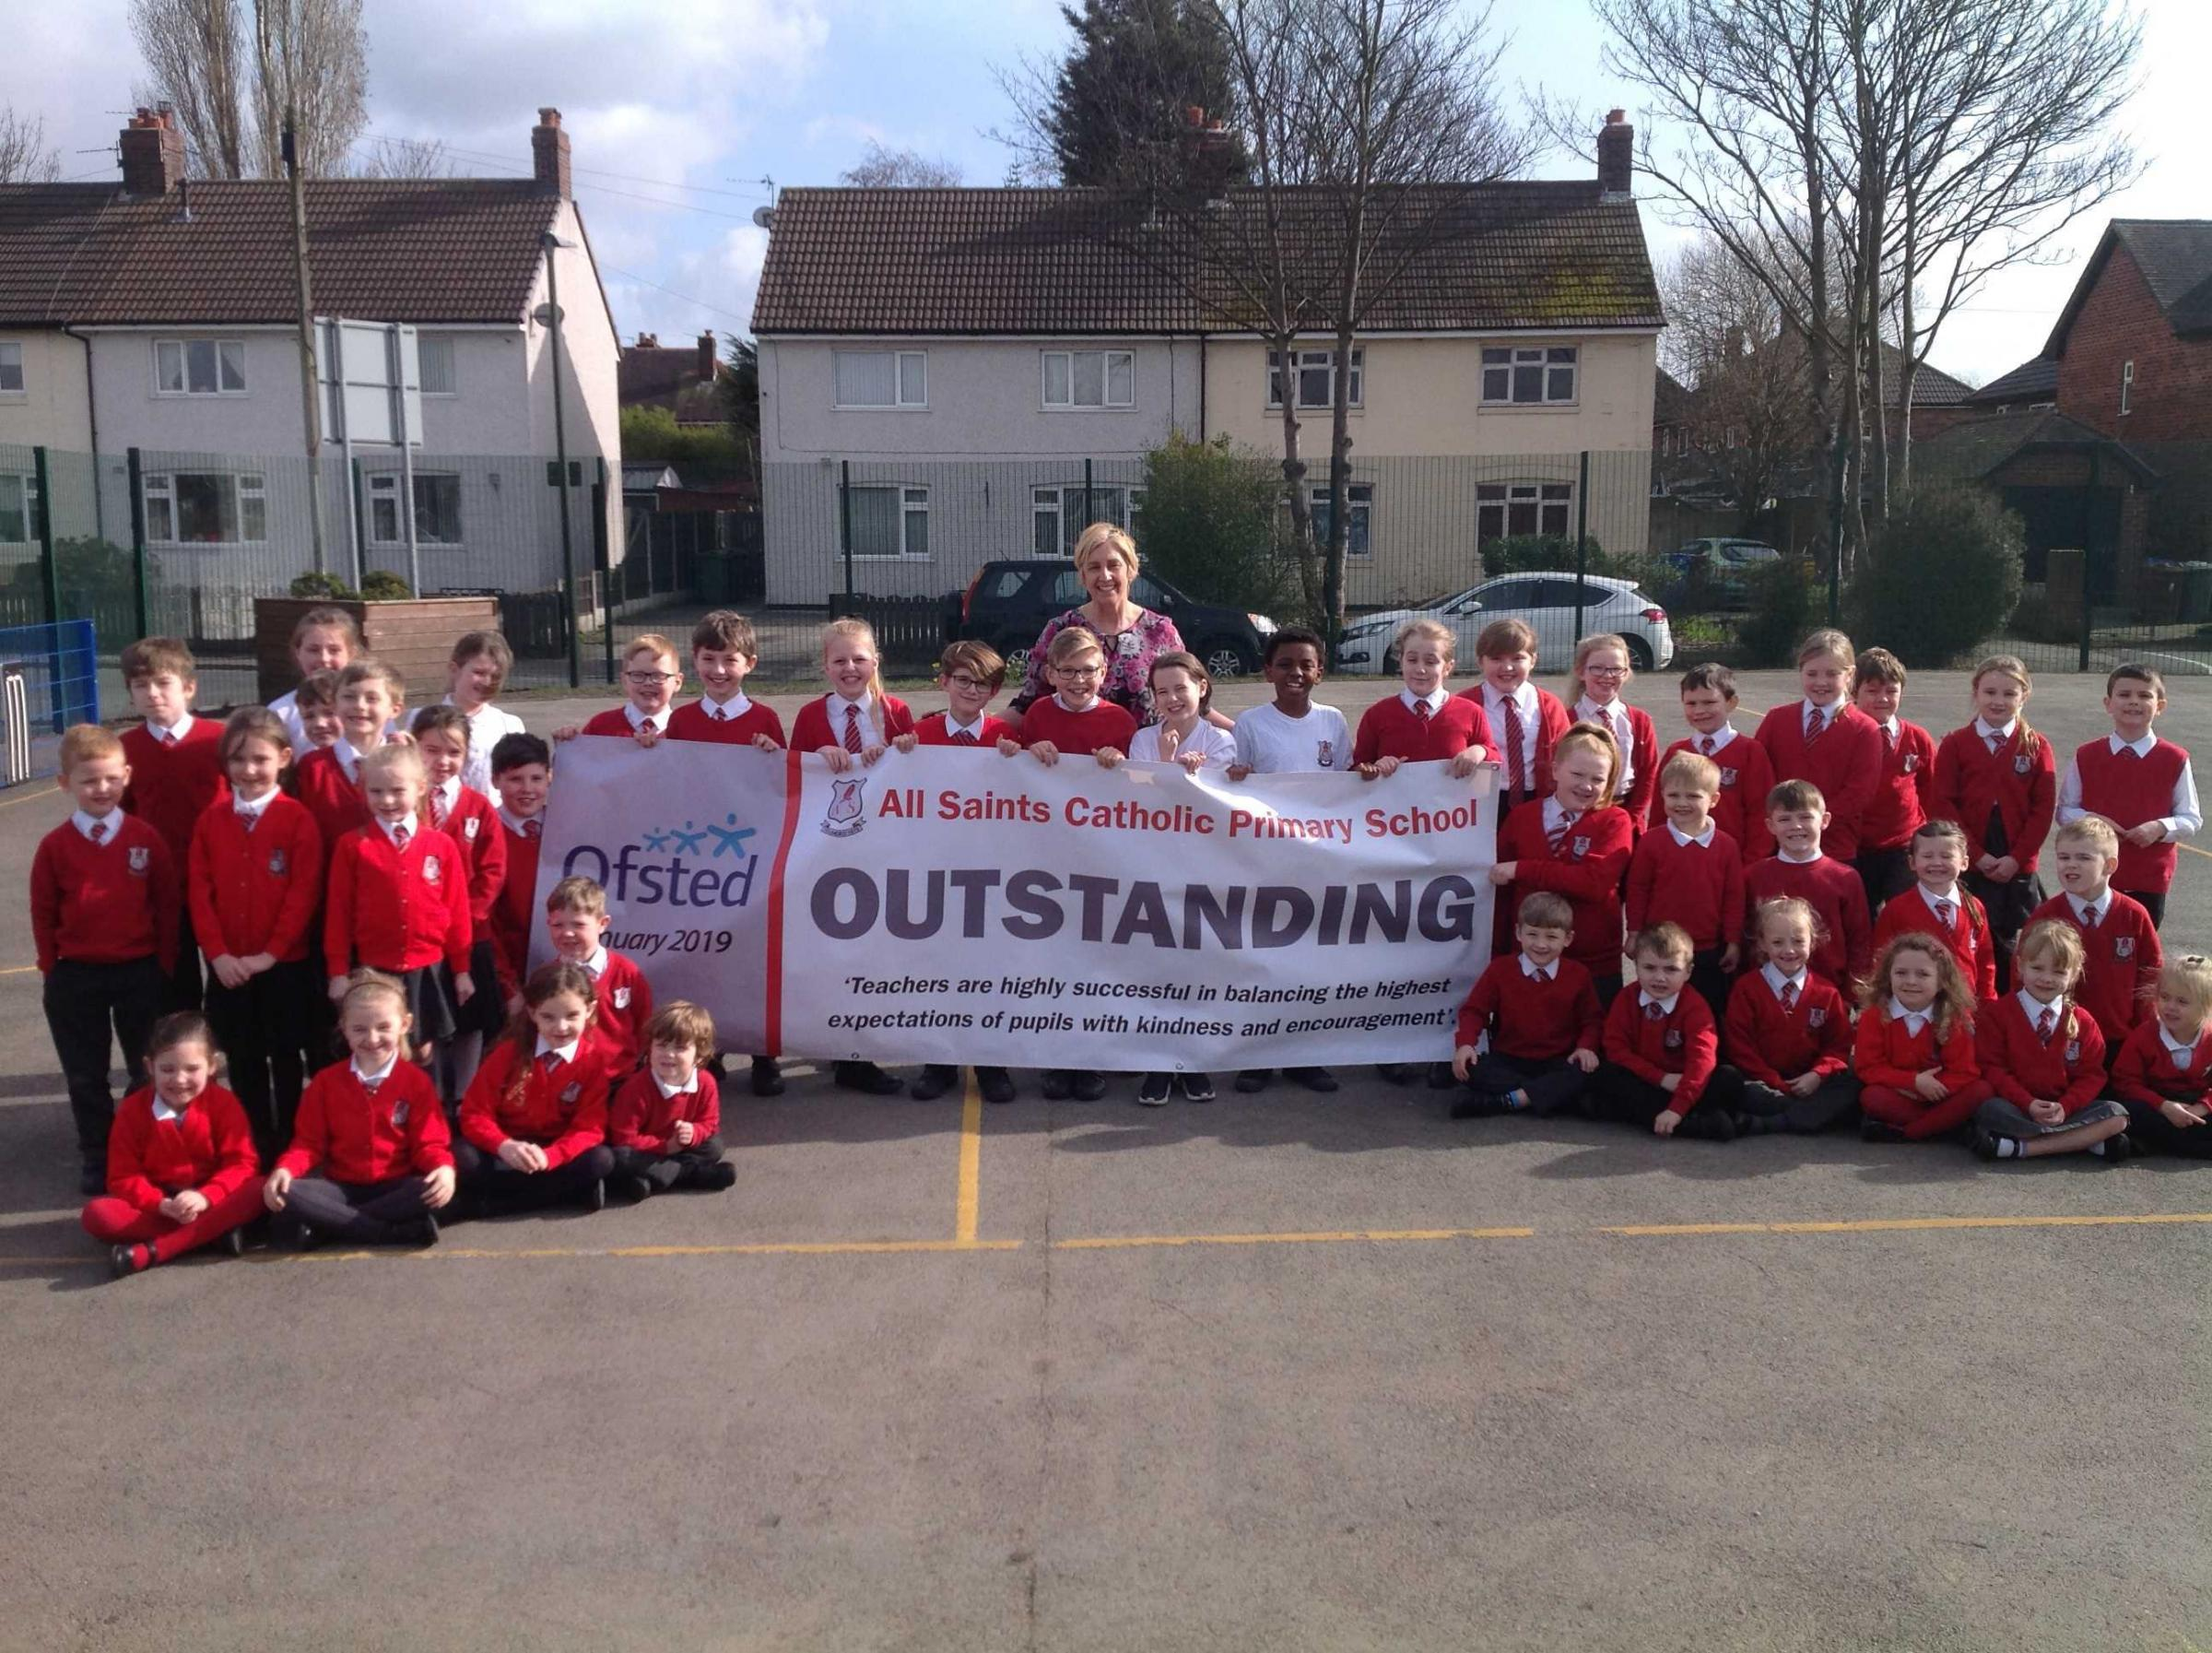 All Saints Catholic Primary School's pupils with head teacher Wendy Hughes, centre